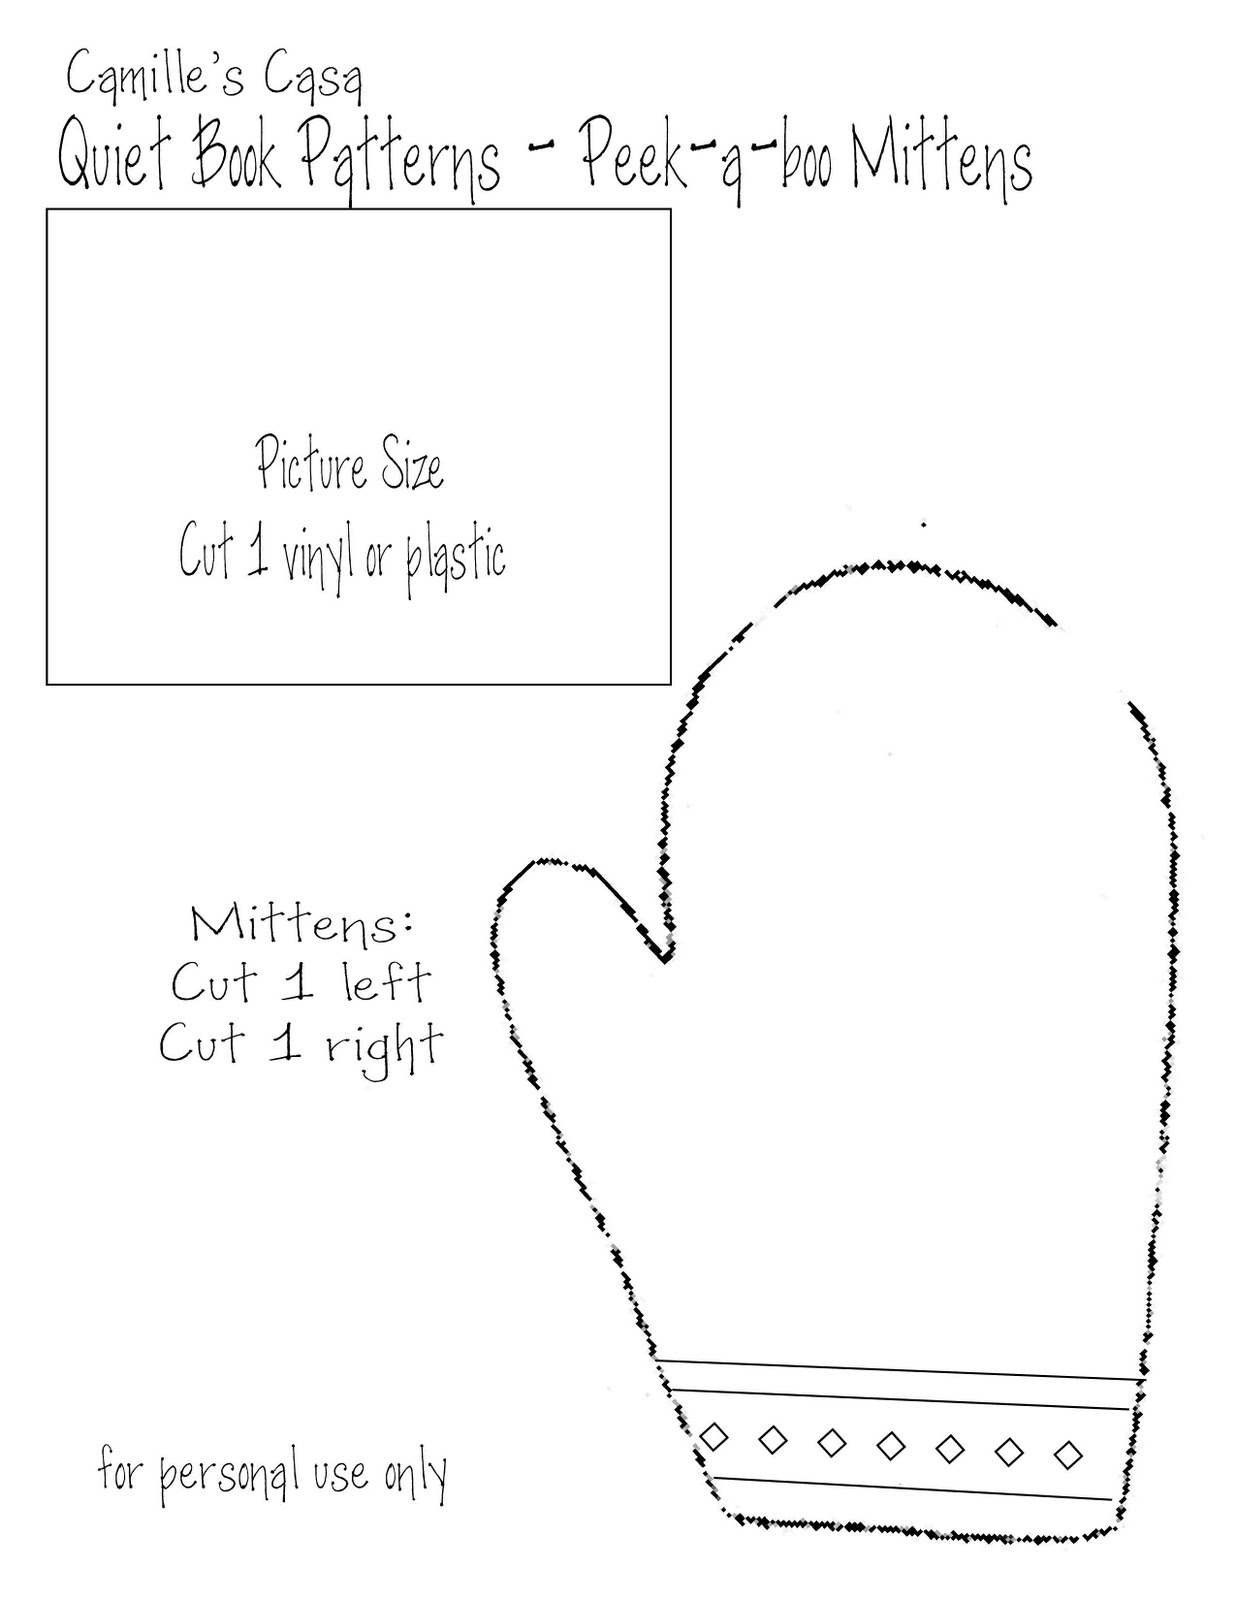 Free Mitten Patterns | myideasbedroom.com